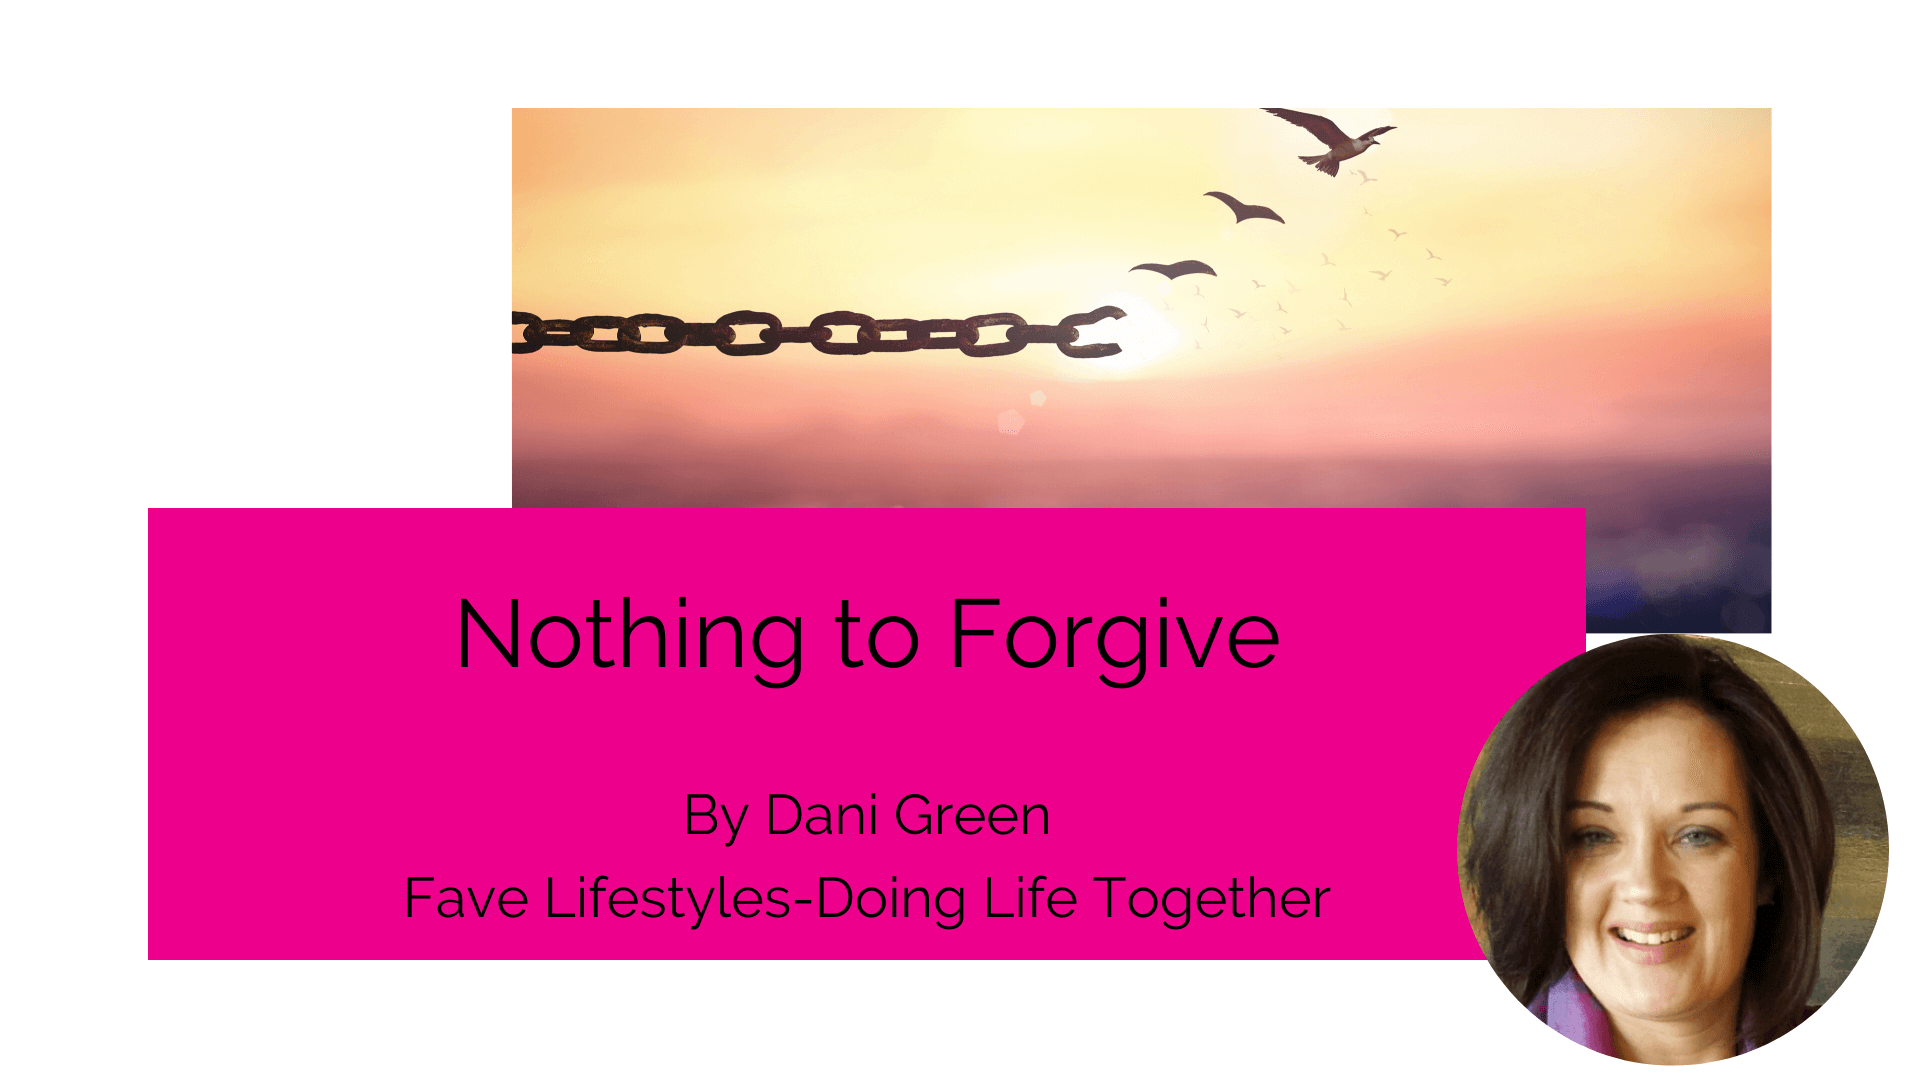 Nothing to Forgive